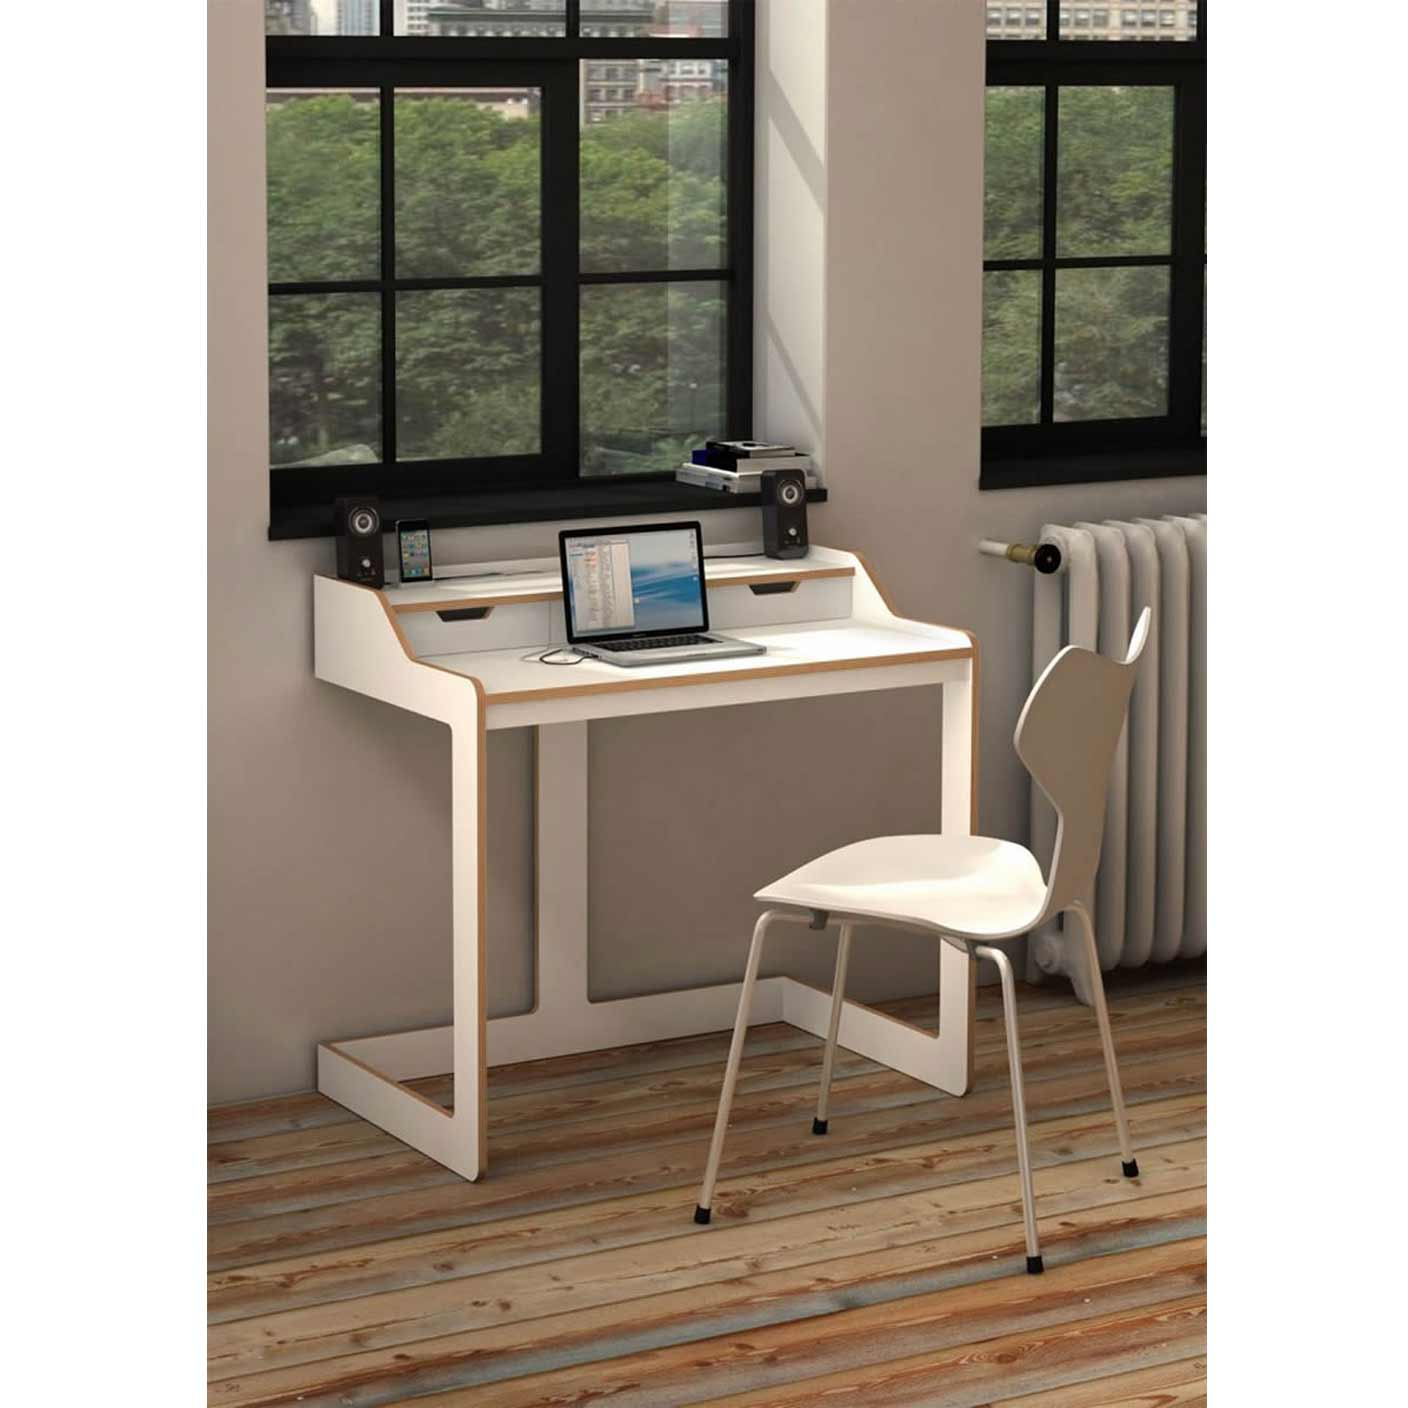 Amazing Modern Desks for Small Places: Small Desk modern desks for small spaces